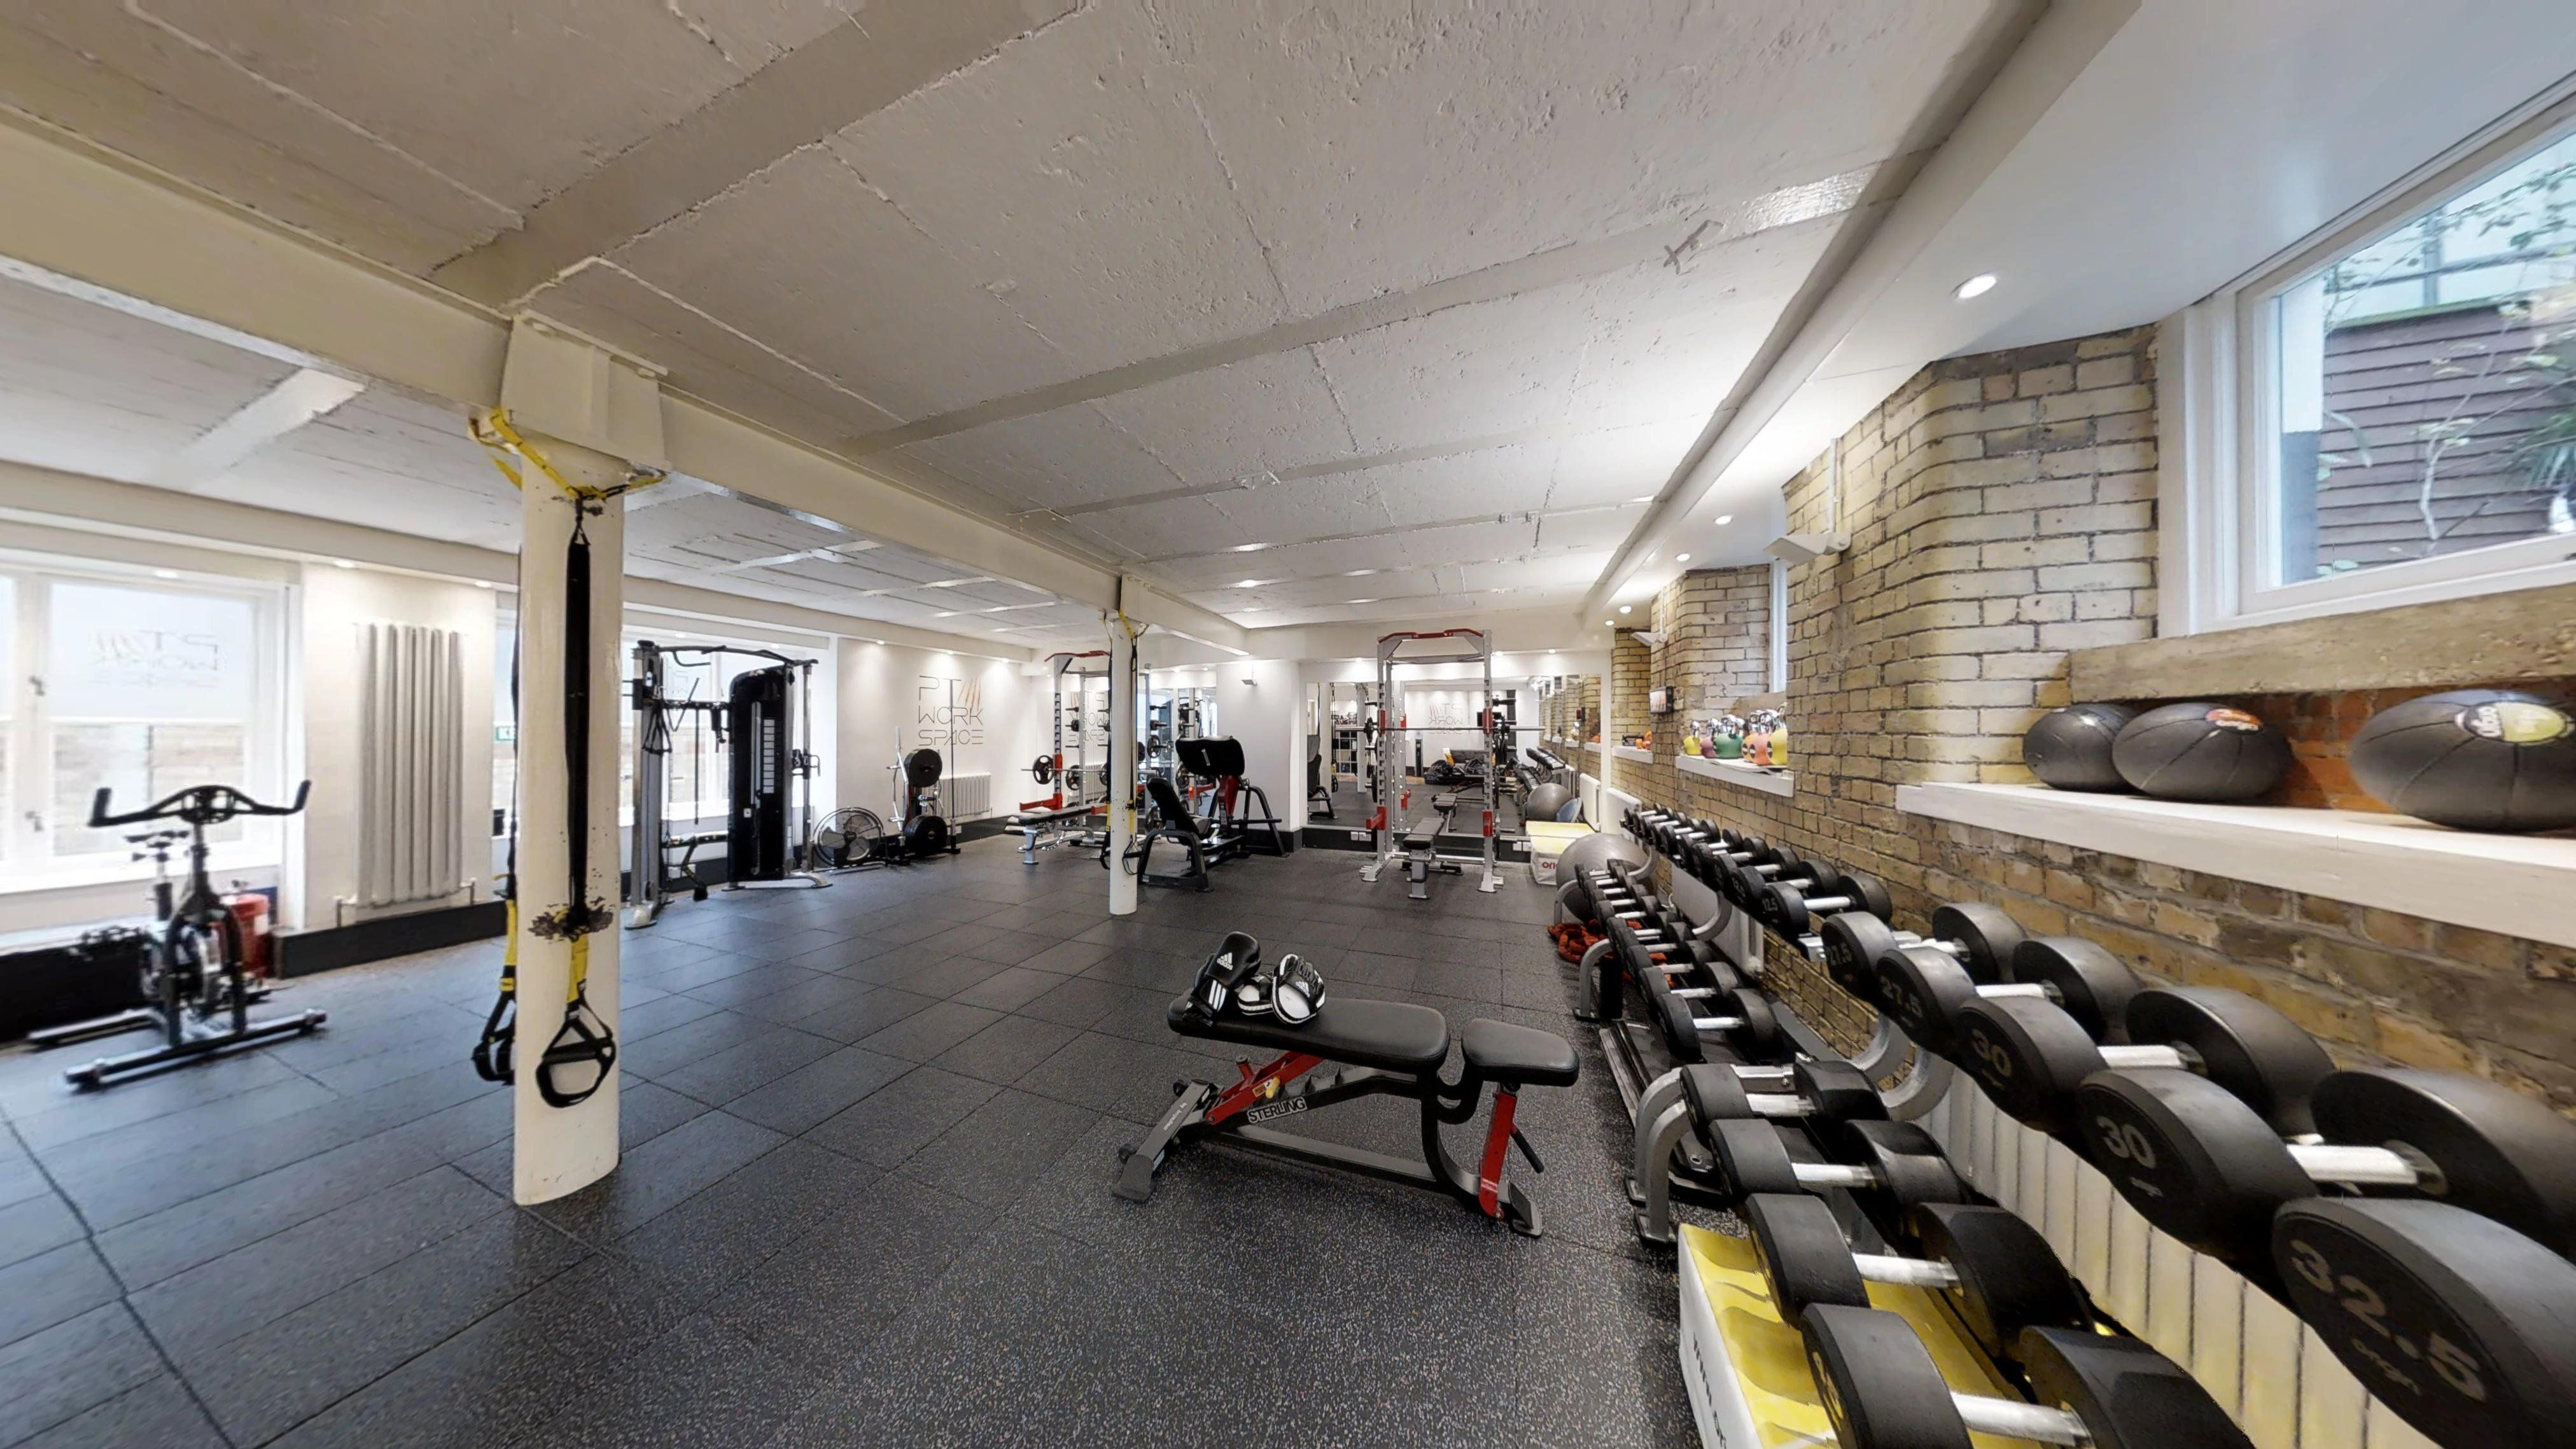 Pt Workspace North London Fitness Studio 87 89 Shepperton Road Islington N1 3df Train Who You Want When Personal Training Studio Fitness Studio Work Space